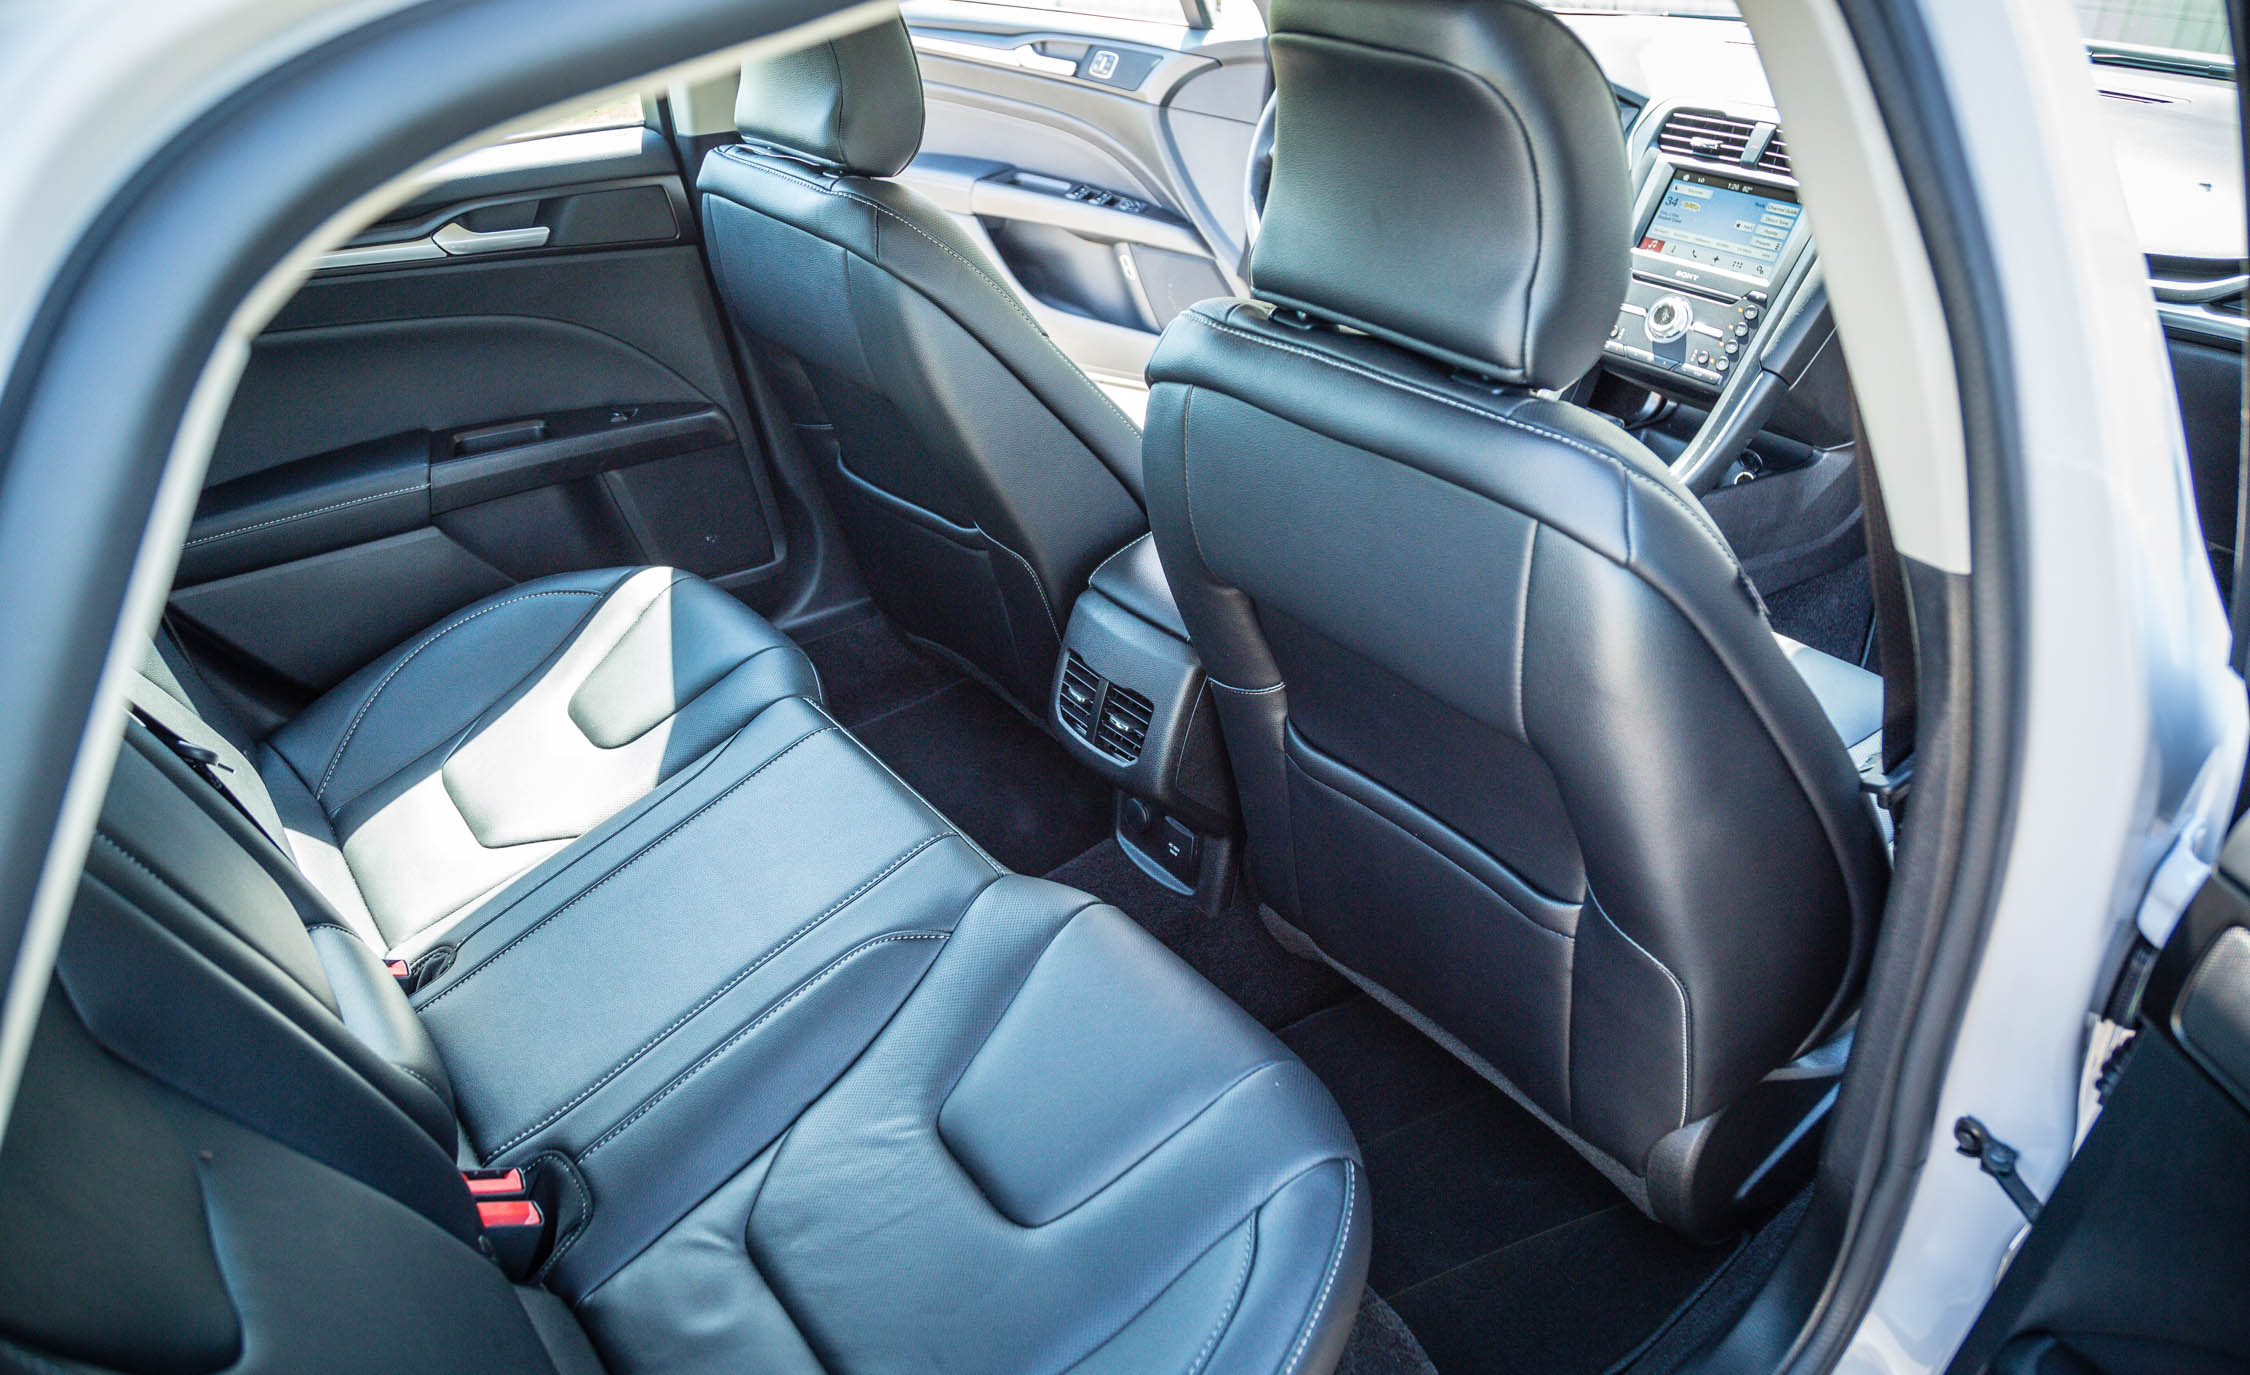 2017 Ford Fusion Energi Titanium Interior Seats Rear (Photo 17 of 19)